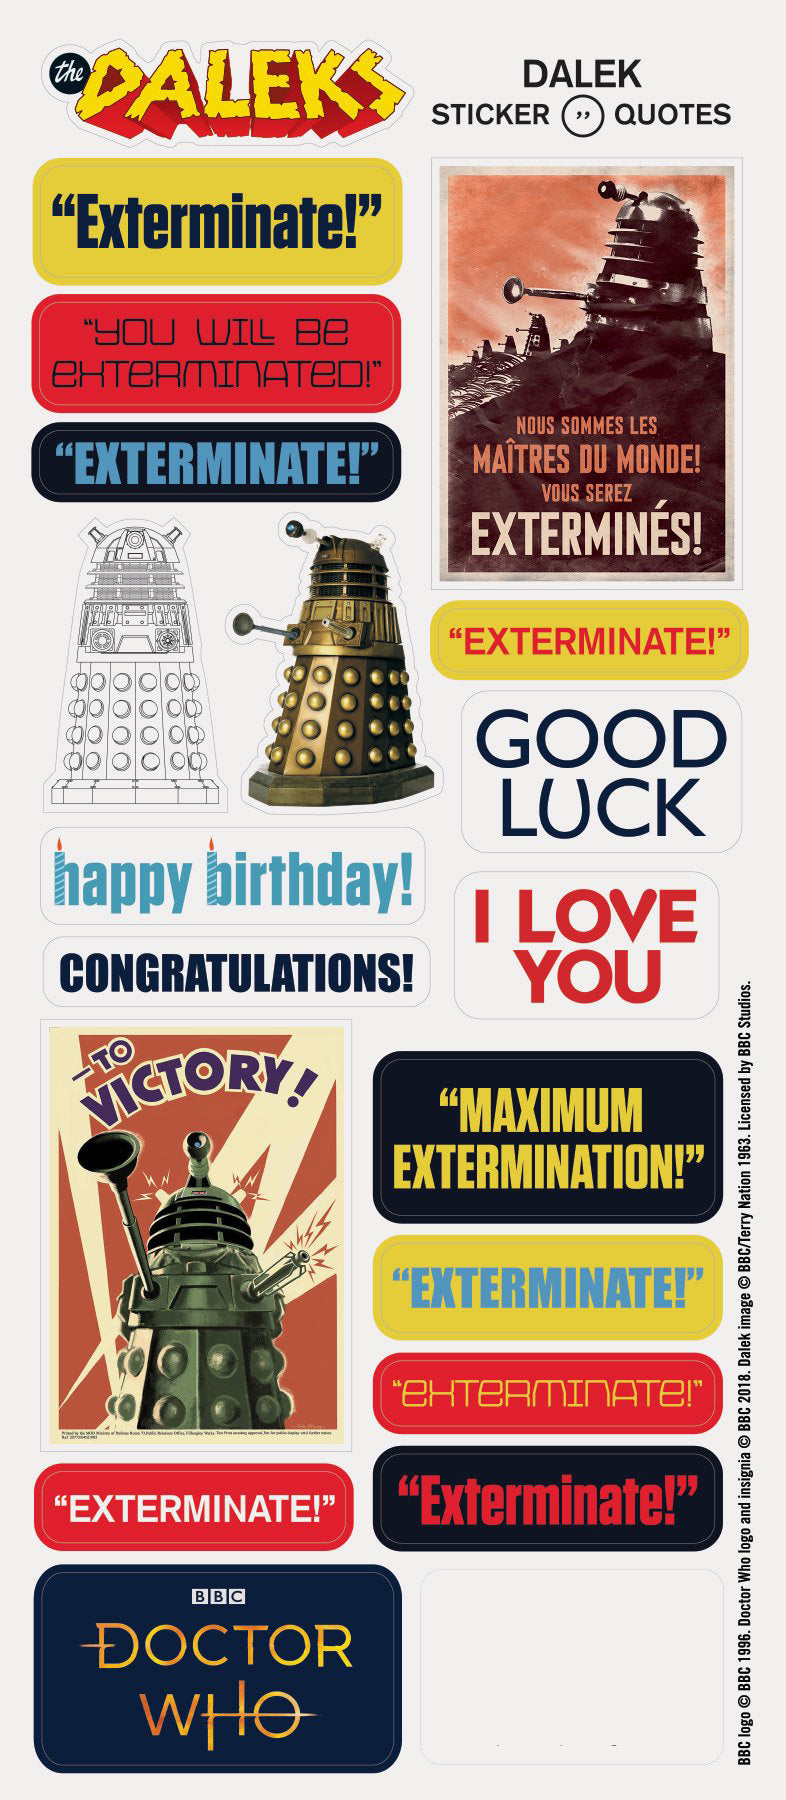 BBC Doctor Who Dalek Greeting Card and Stickers